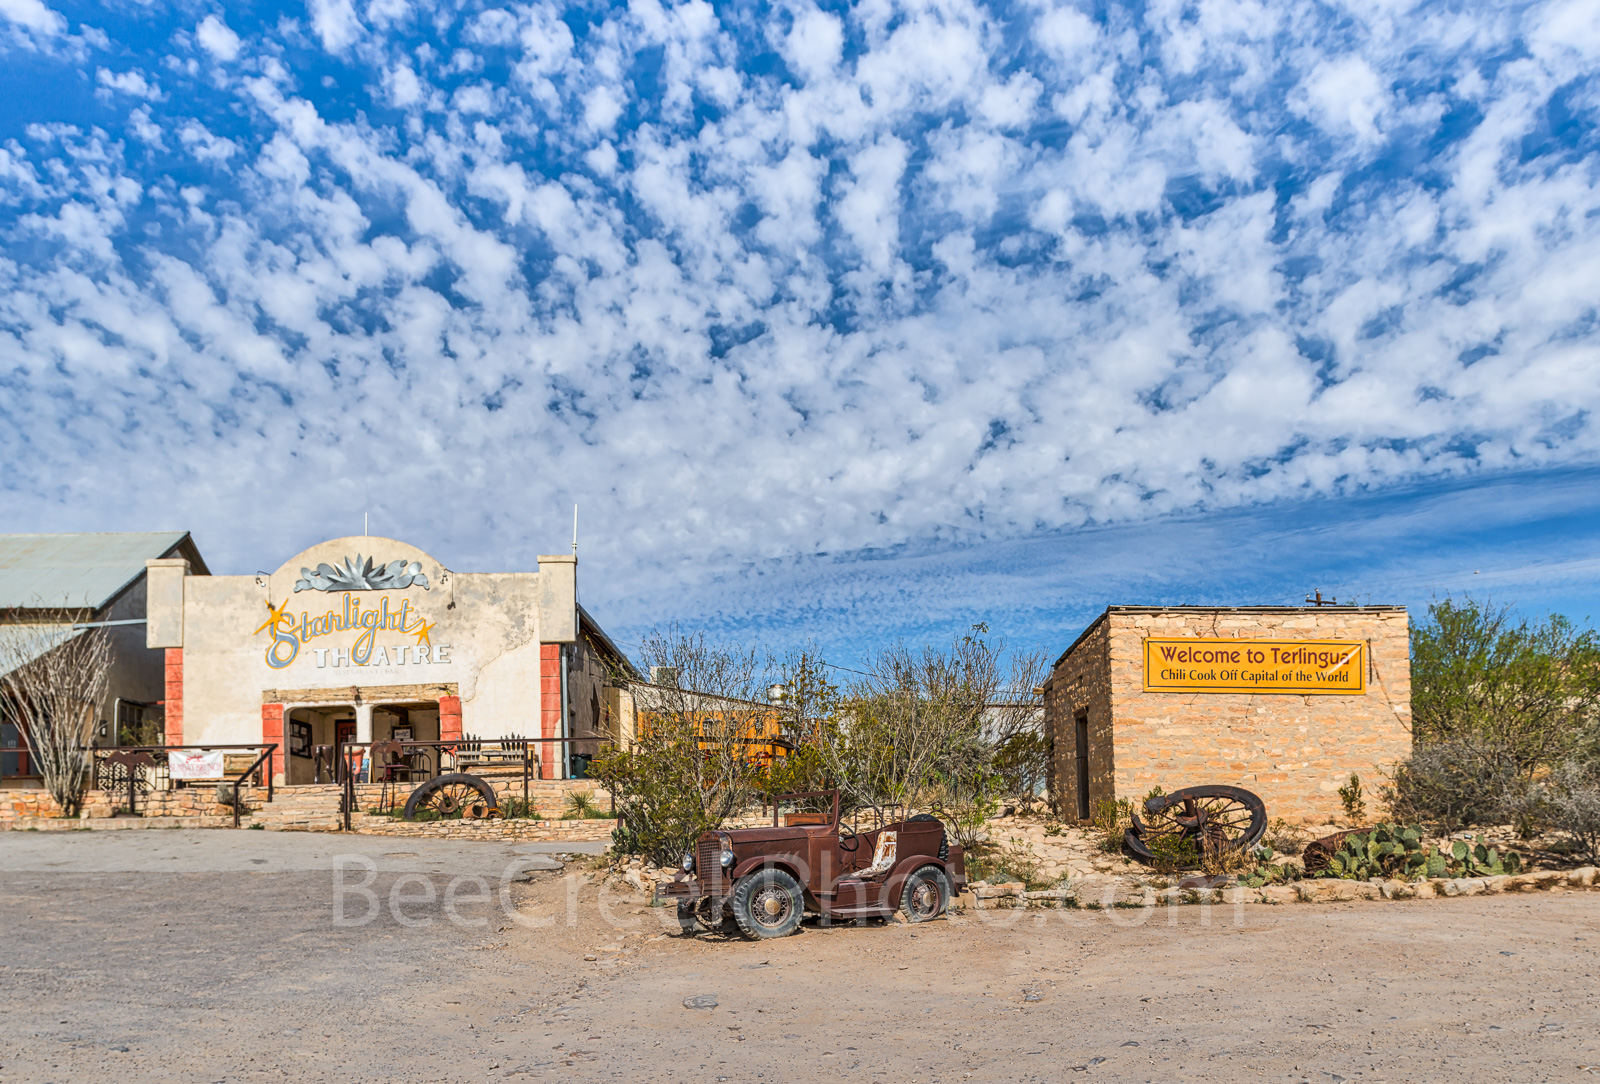 Starlight Theatre, Terlingua, restaurant, west texas, big bend, jeep, Terlingua sign, chili cook off,Travel, Leisure, vacation, tourism, lifestyle, Texas, restaurant, travel,, photo